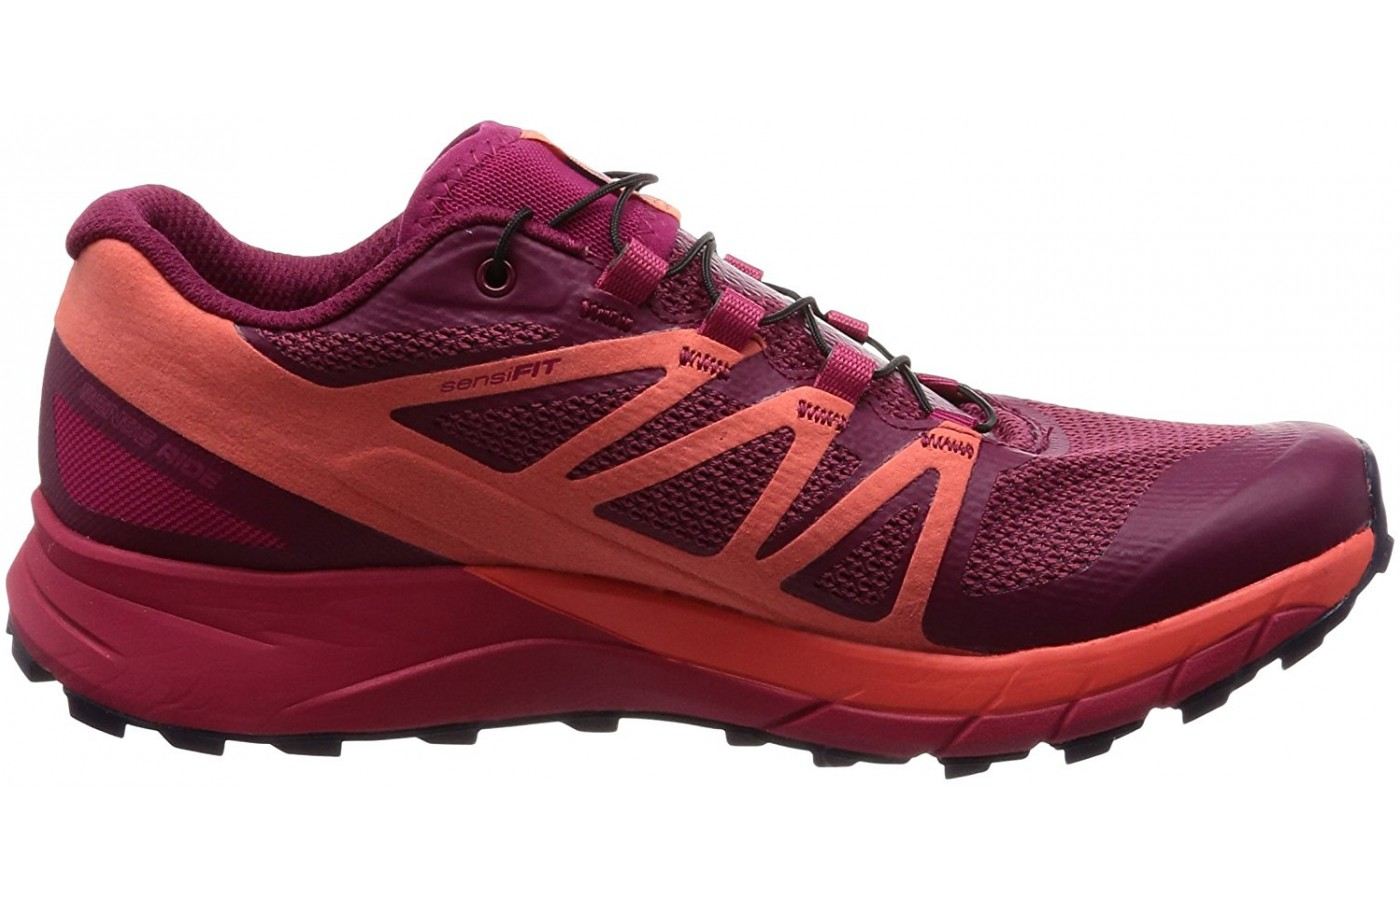 Salomon sense ride mesh